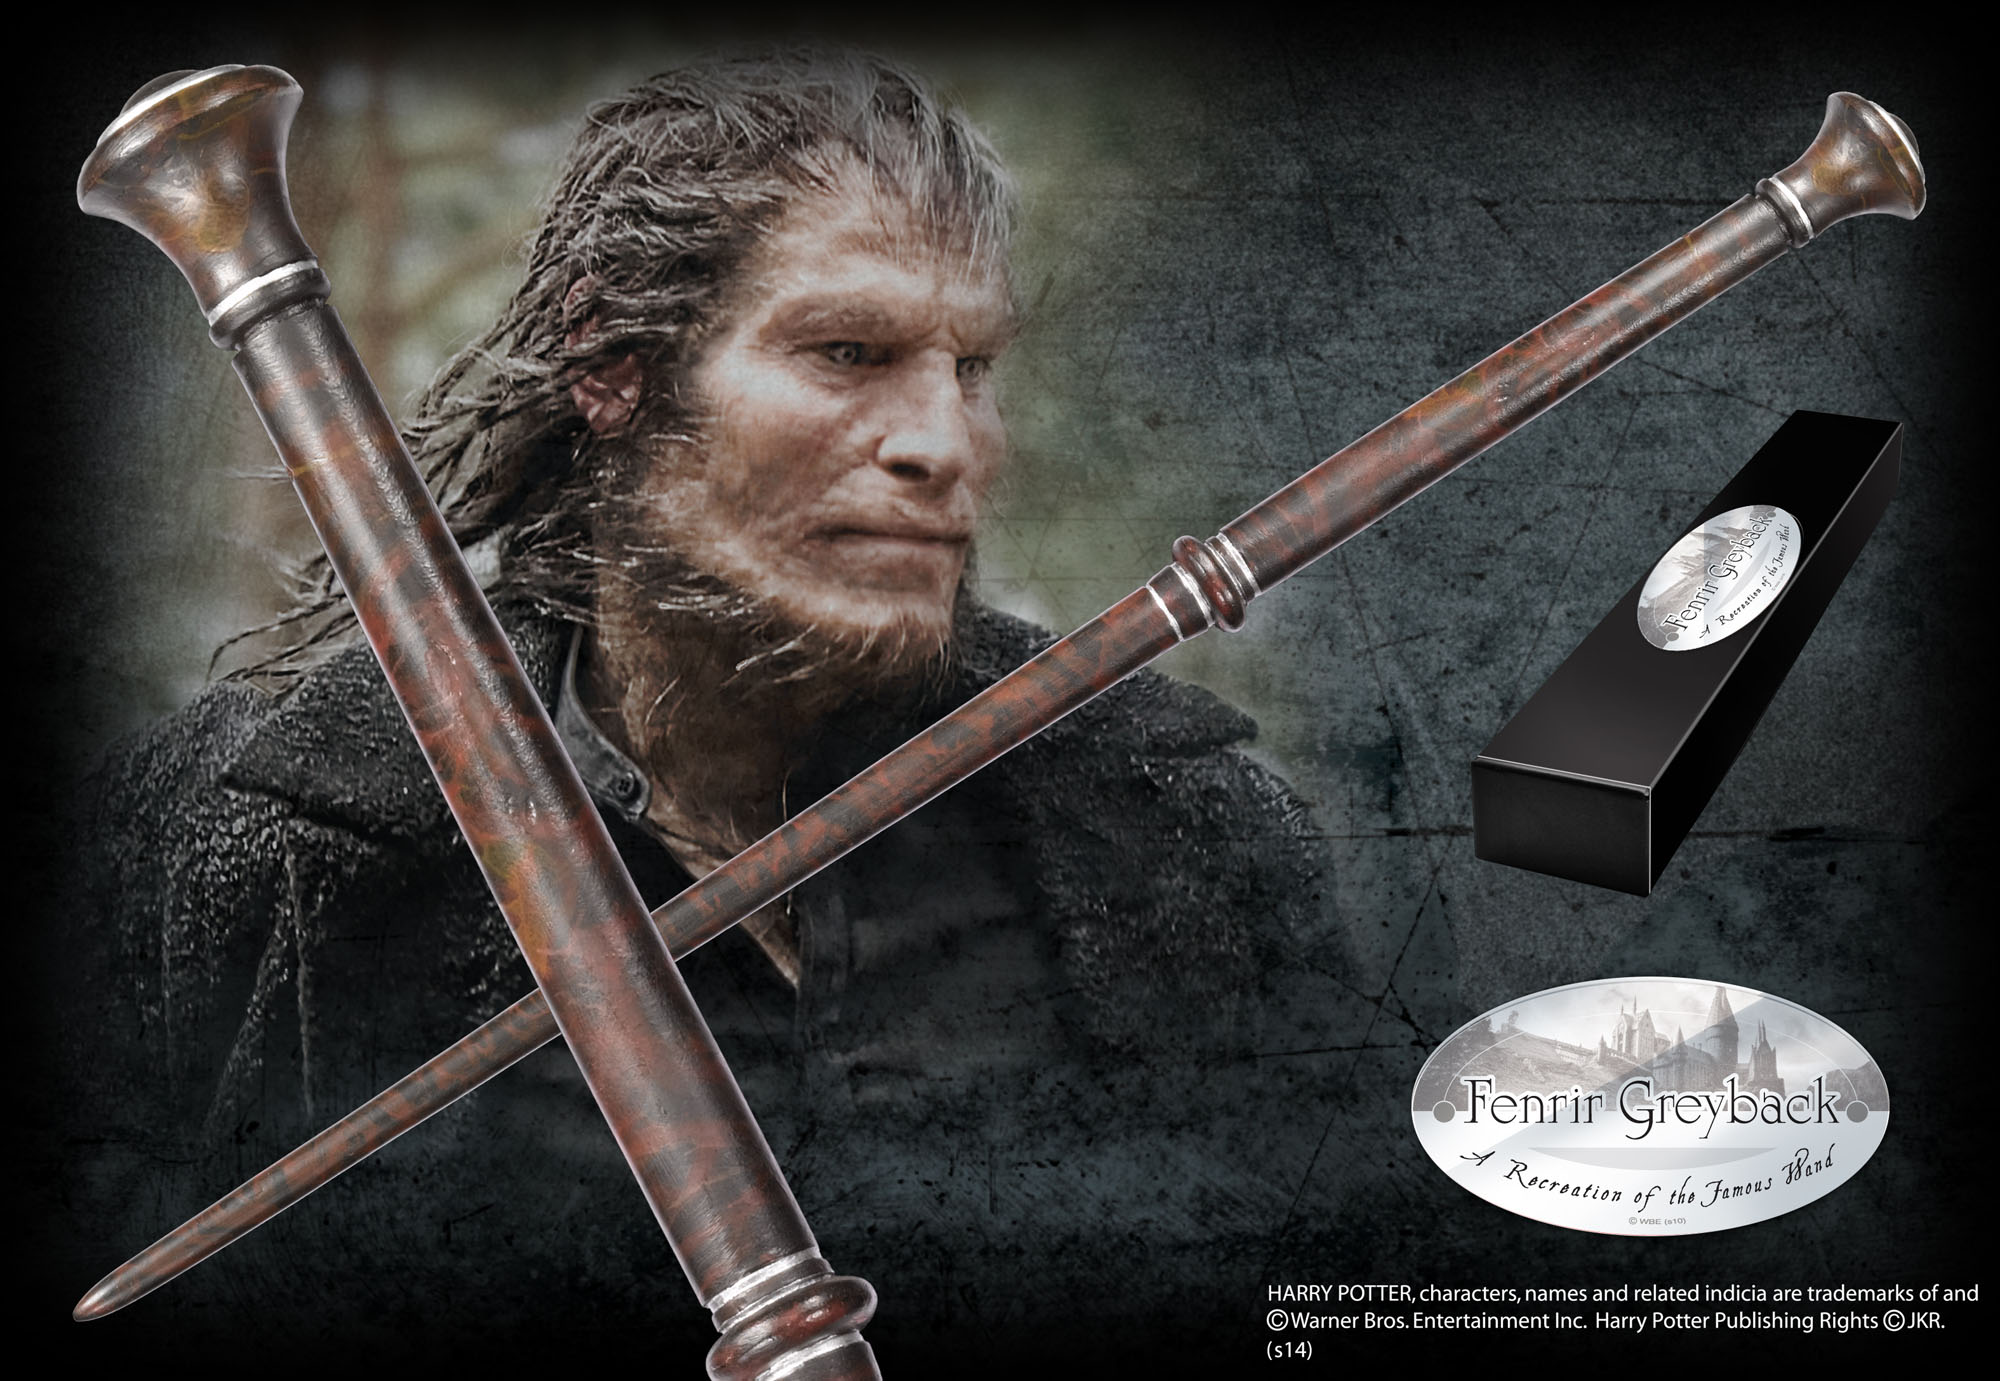 fenrir greyback character wand � the noble collection uk